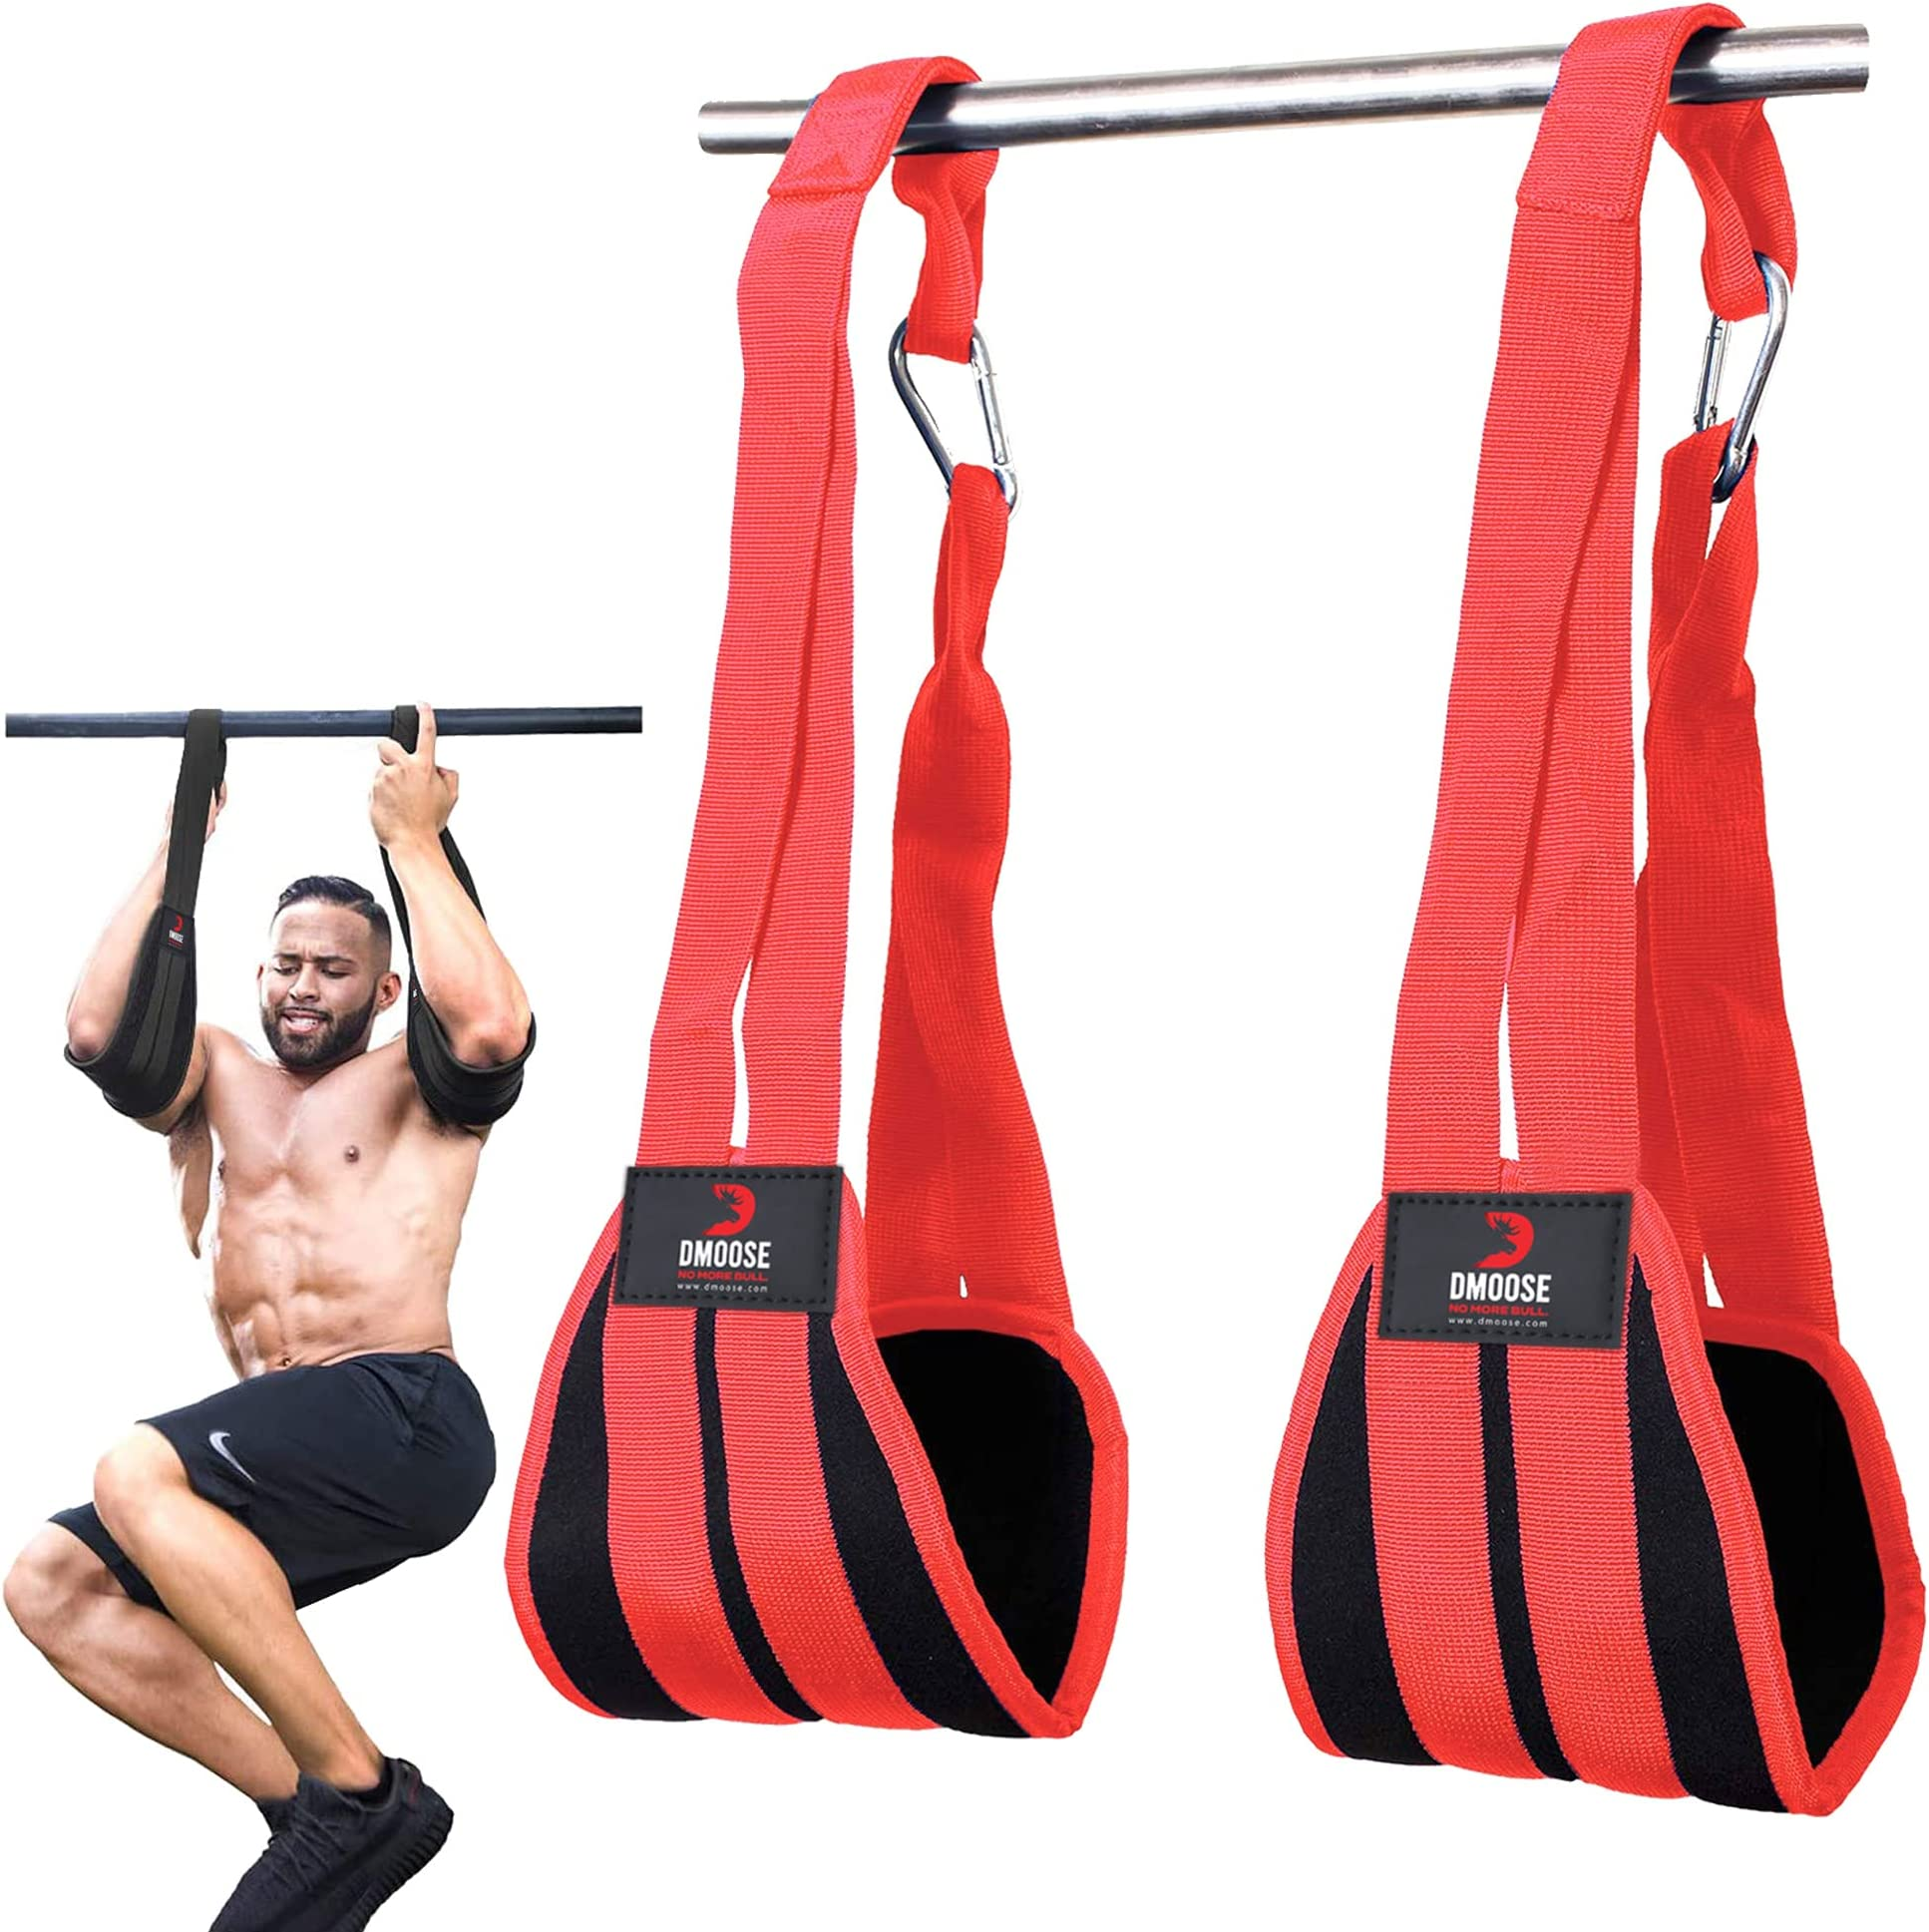 Details about  / Hanging Ab Strap for Pullup Bar Workout Exercise Equipment Home Gym for